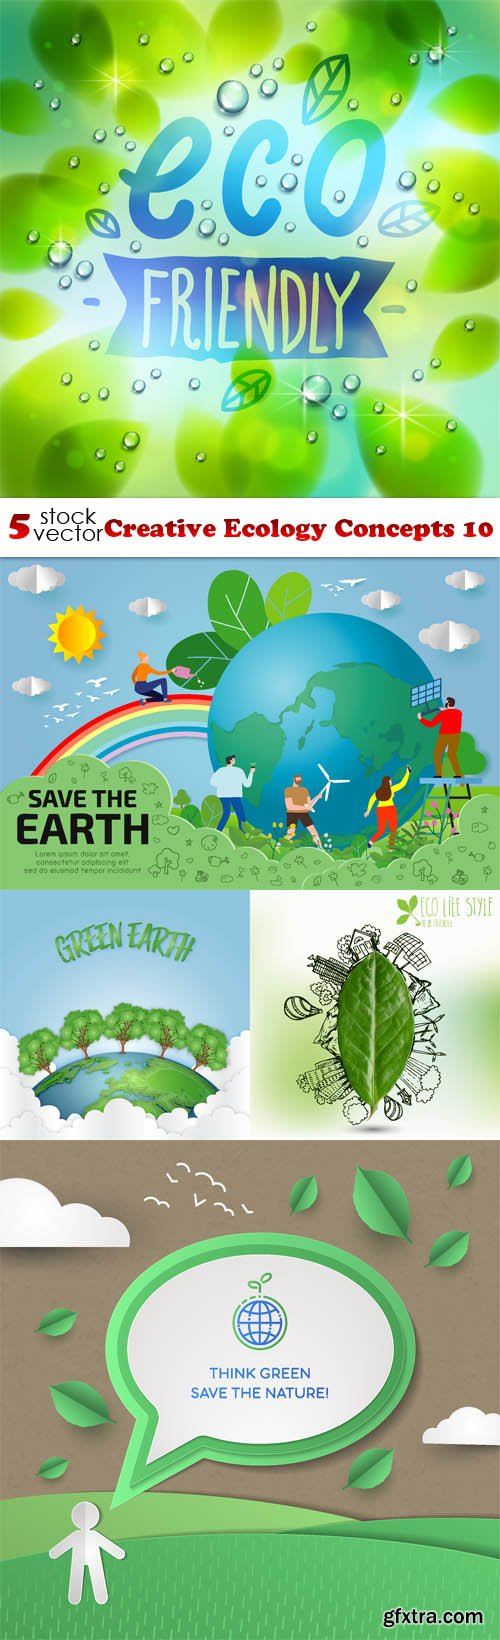 Vectors - Creative Ecology Concepts 10